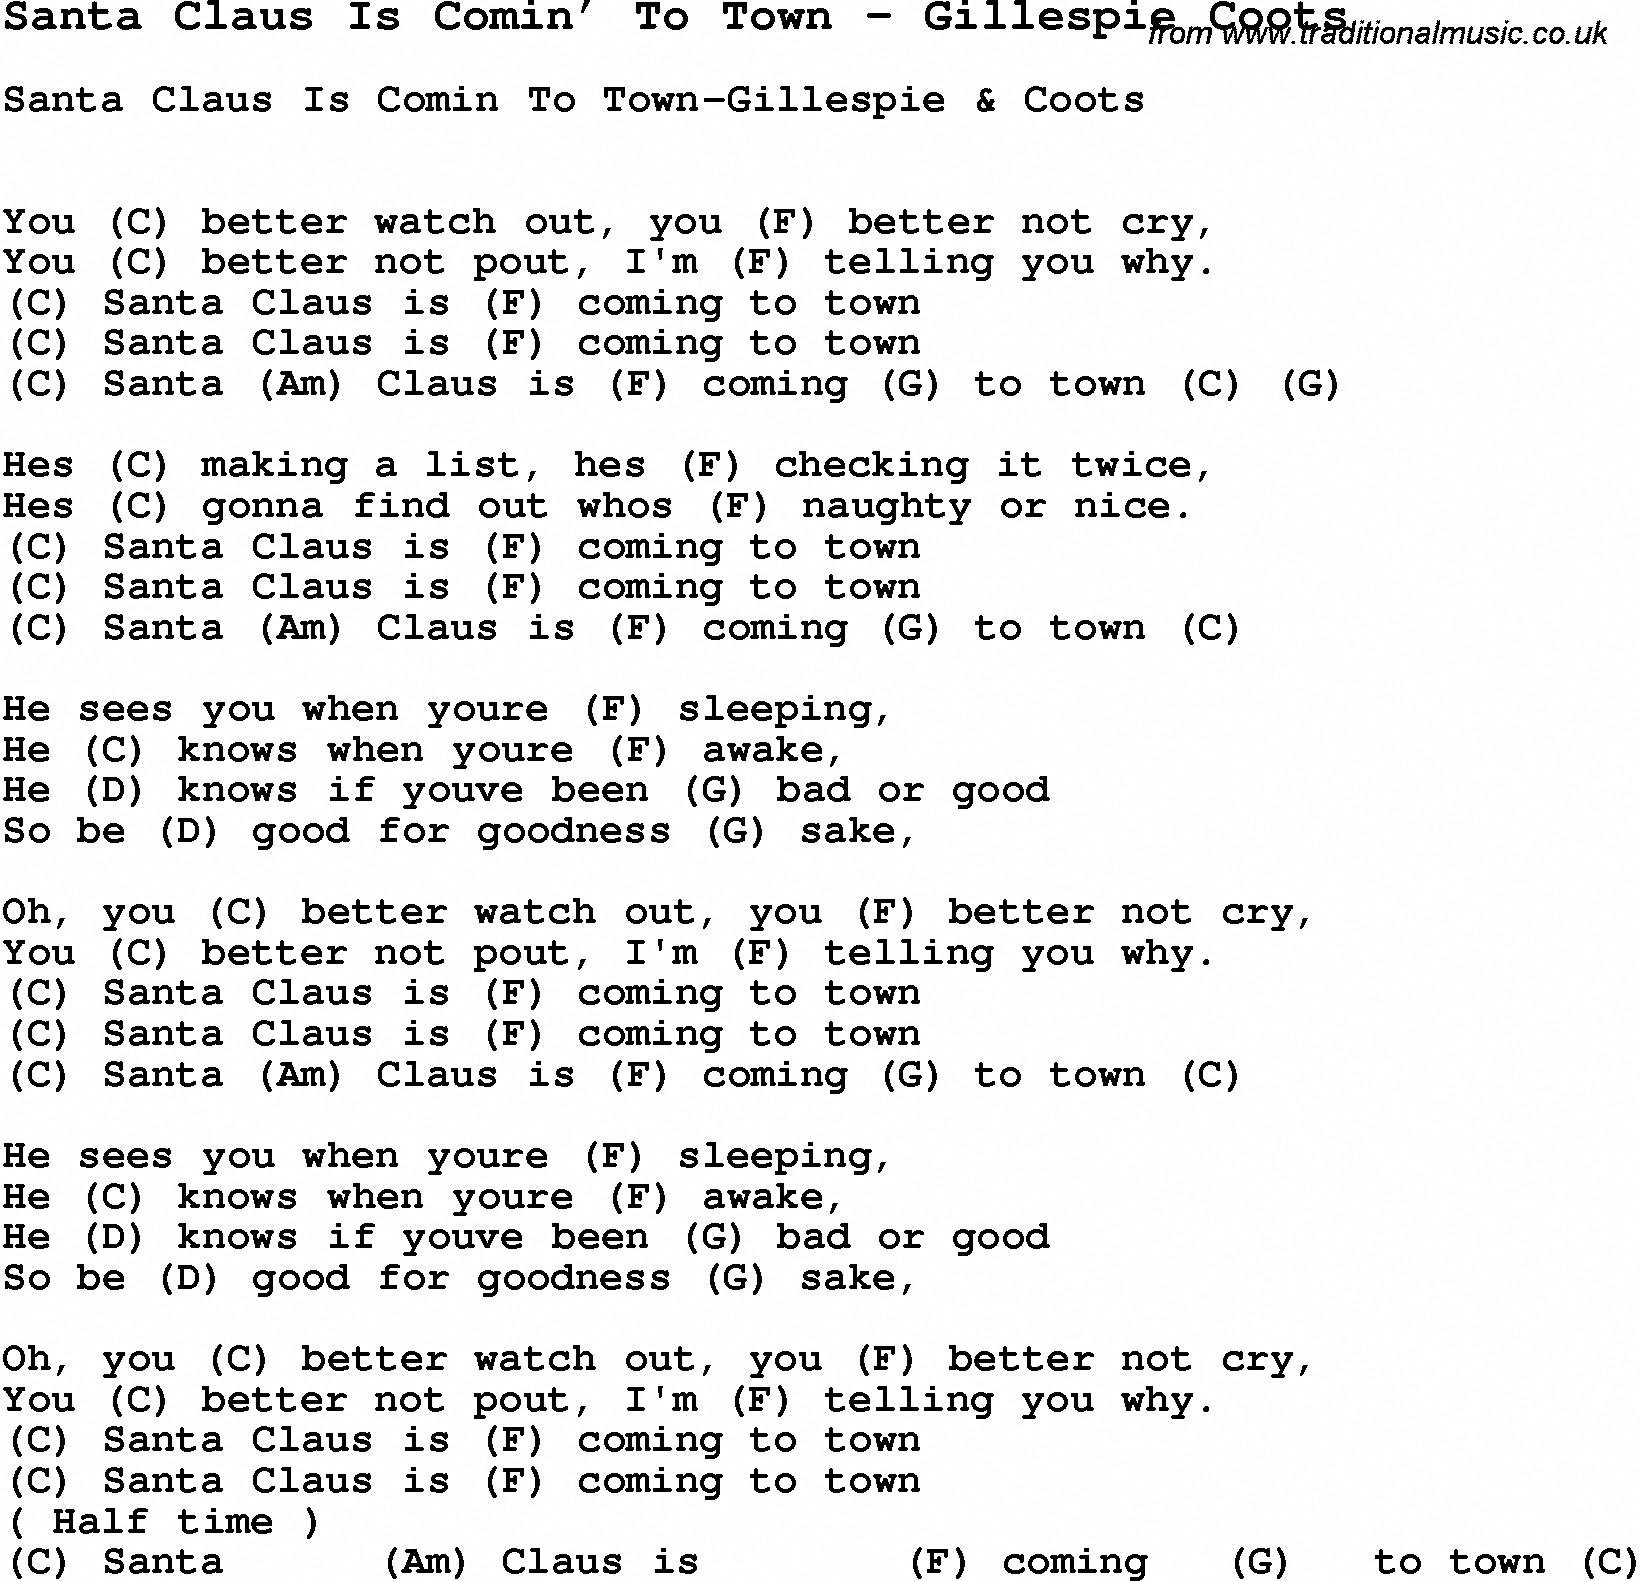 Song Santa Claus Is Comin To Town By Gillespie Coots With Lyrics For Vocal Performan Ukulele Chords Songs Ukulele Fingerpicking Songs Guitar Chords For Songs